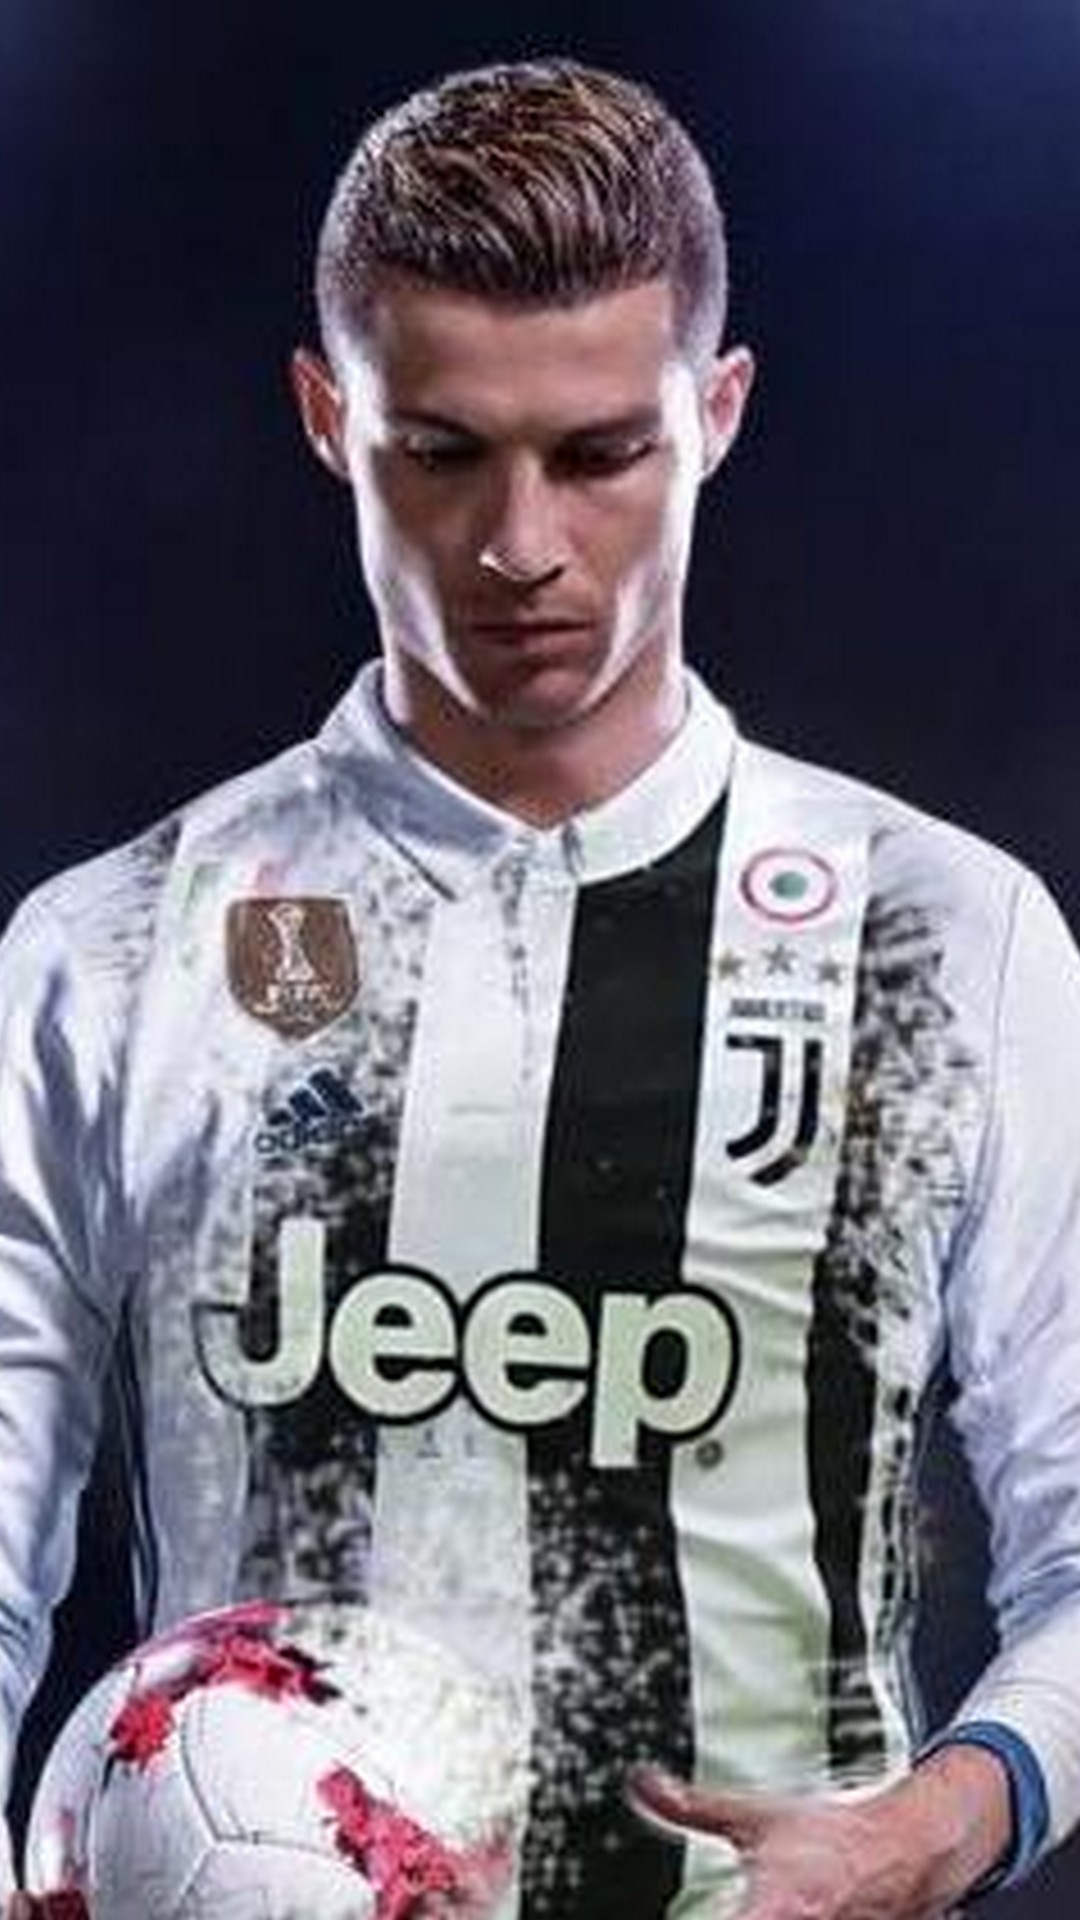 Android Wallpaper Cristiano Ronaldo Juventus   2020 Android Wallpapers 1080x1920